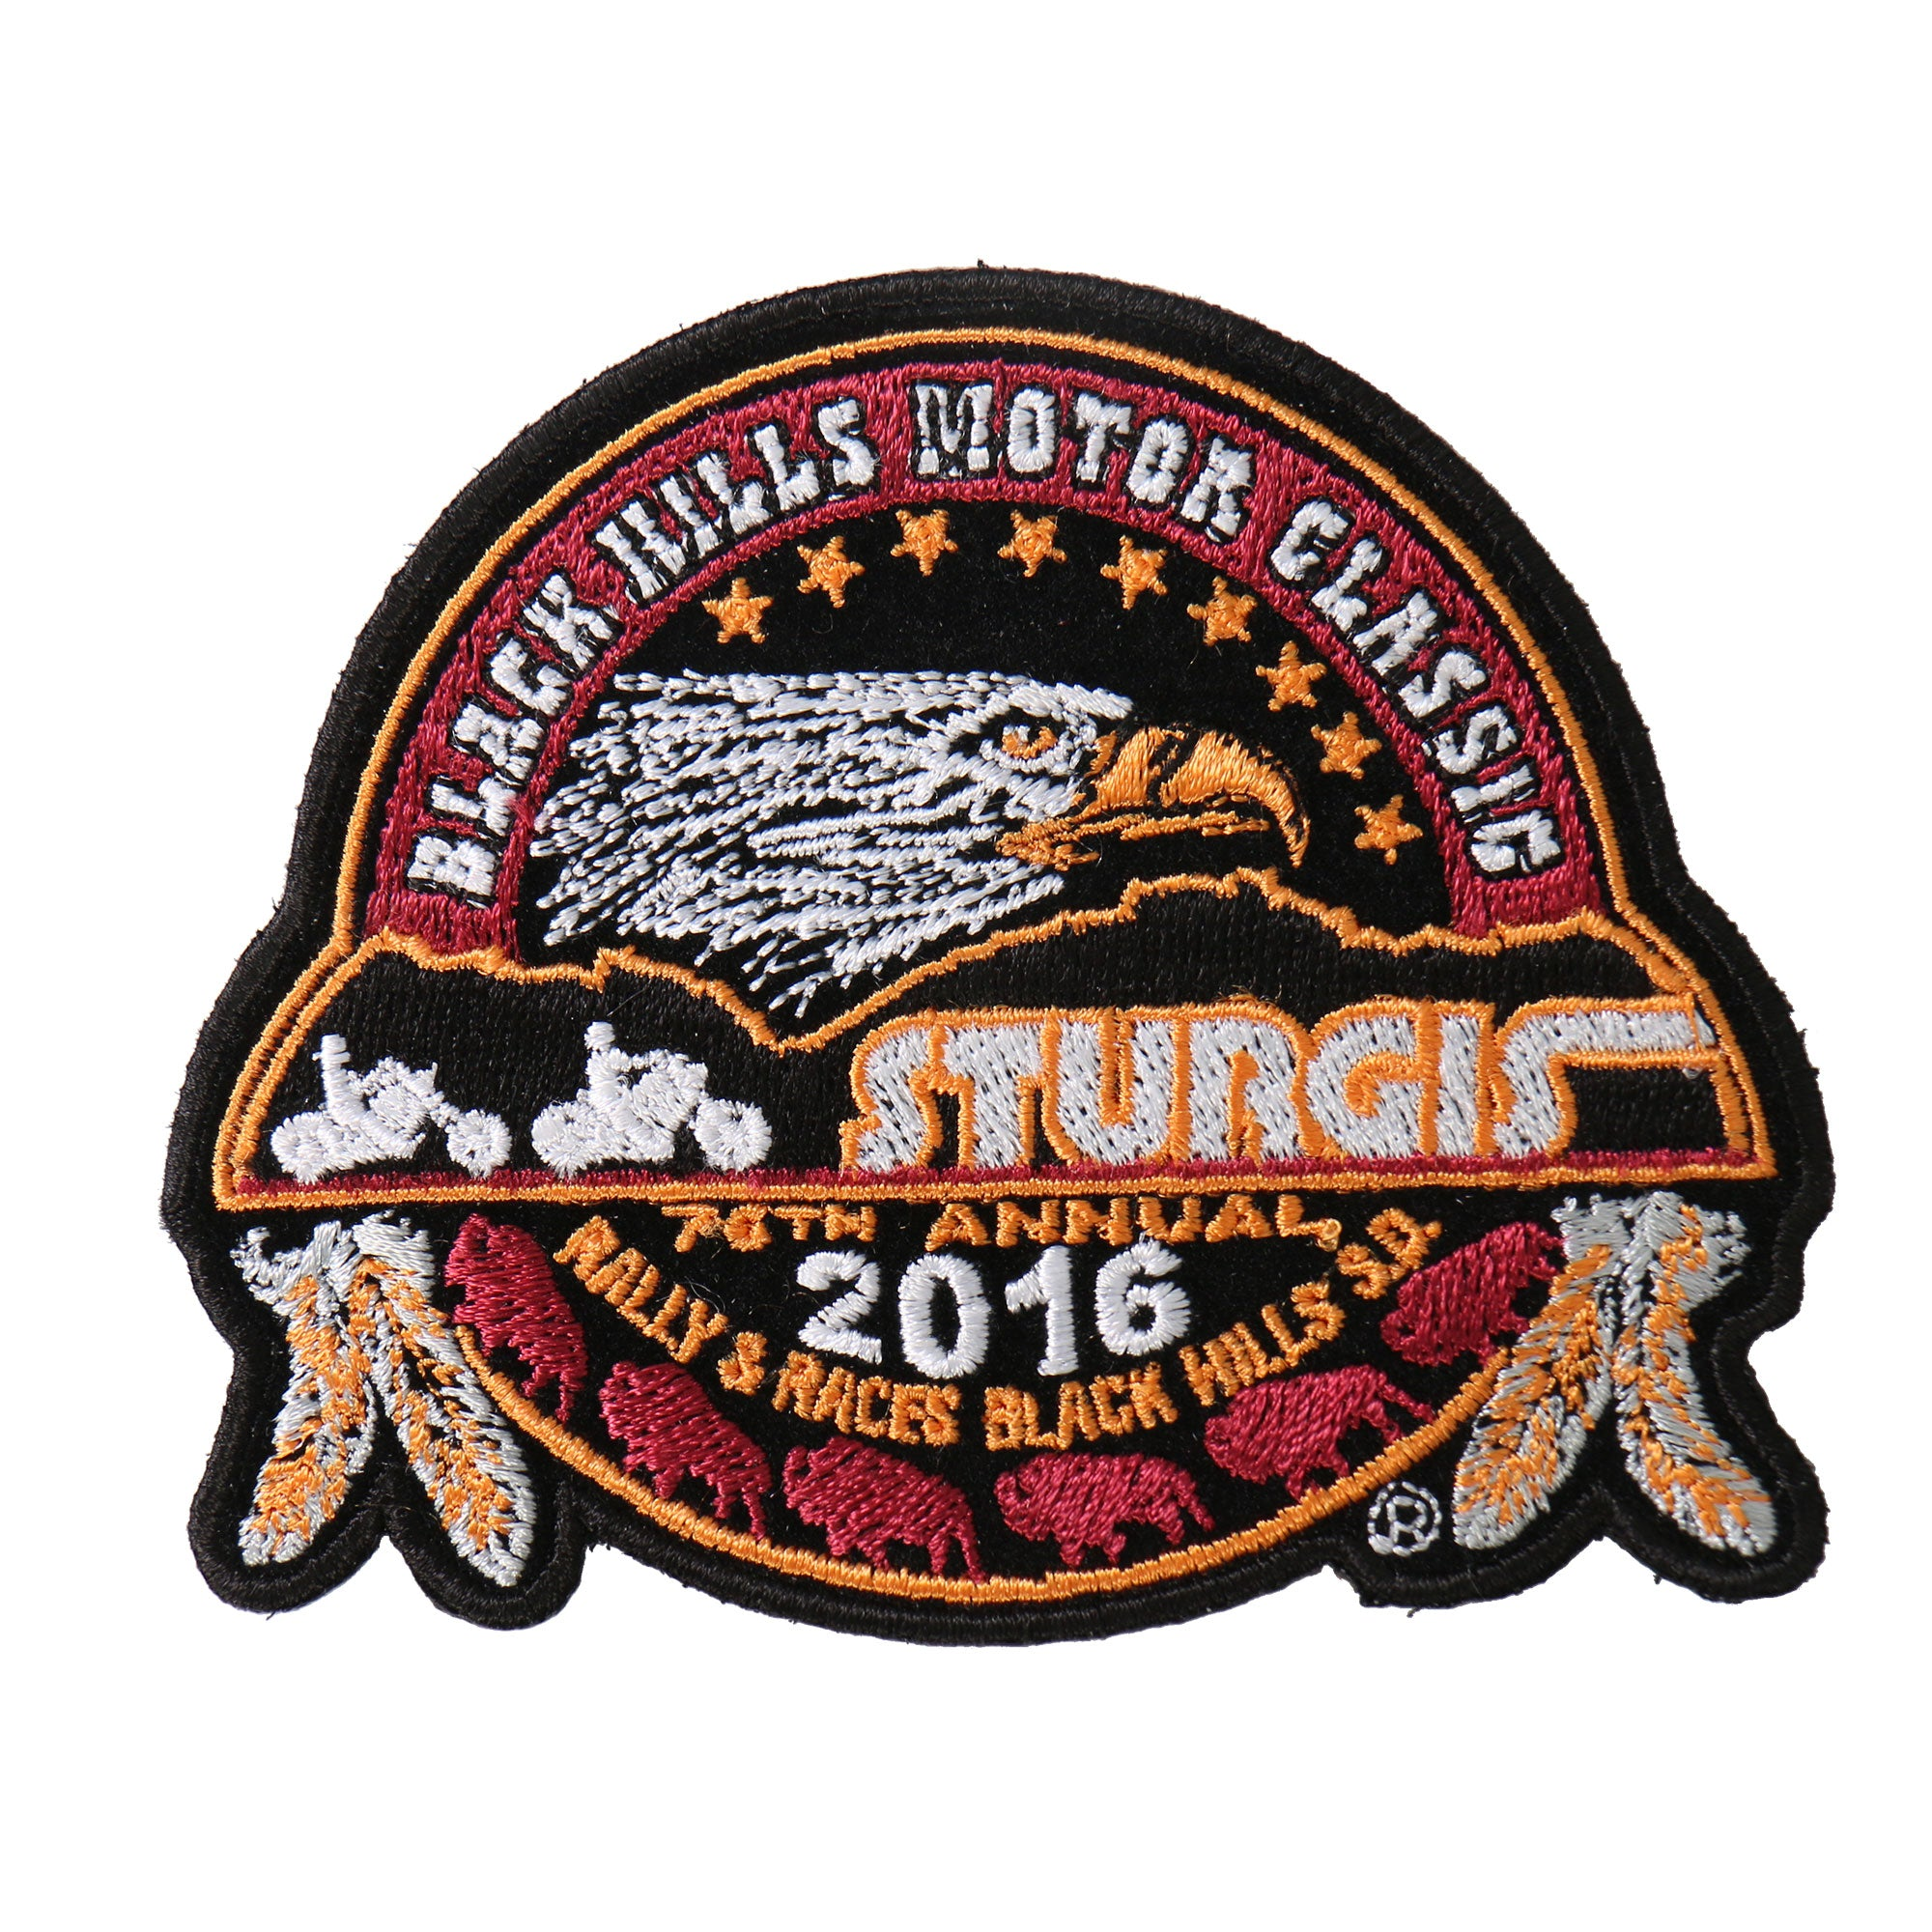 Official 2016 Sturgis Motorcycle Rally Official Composite Patch